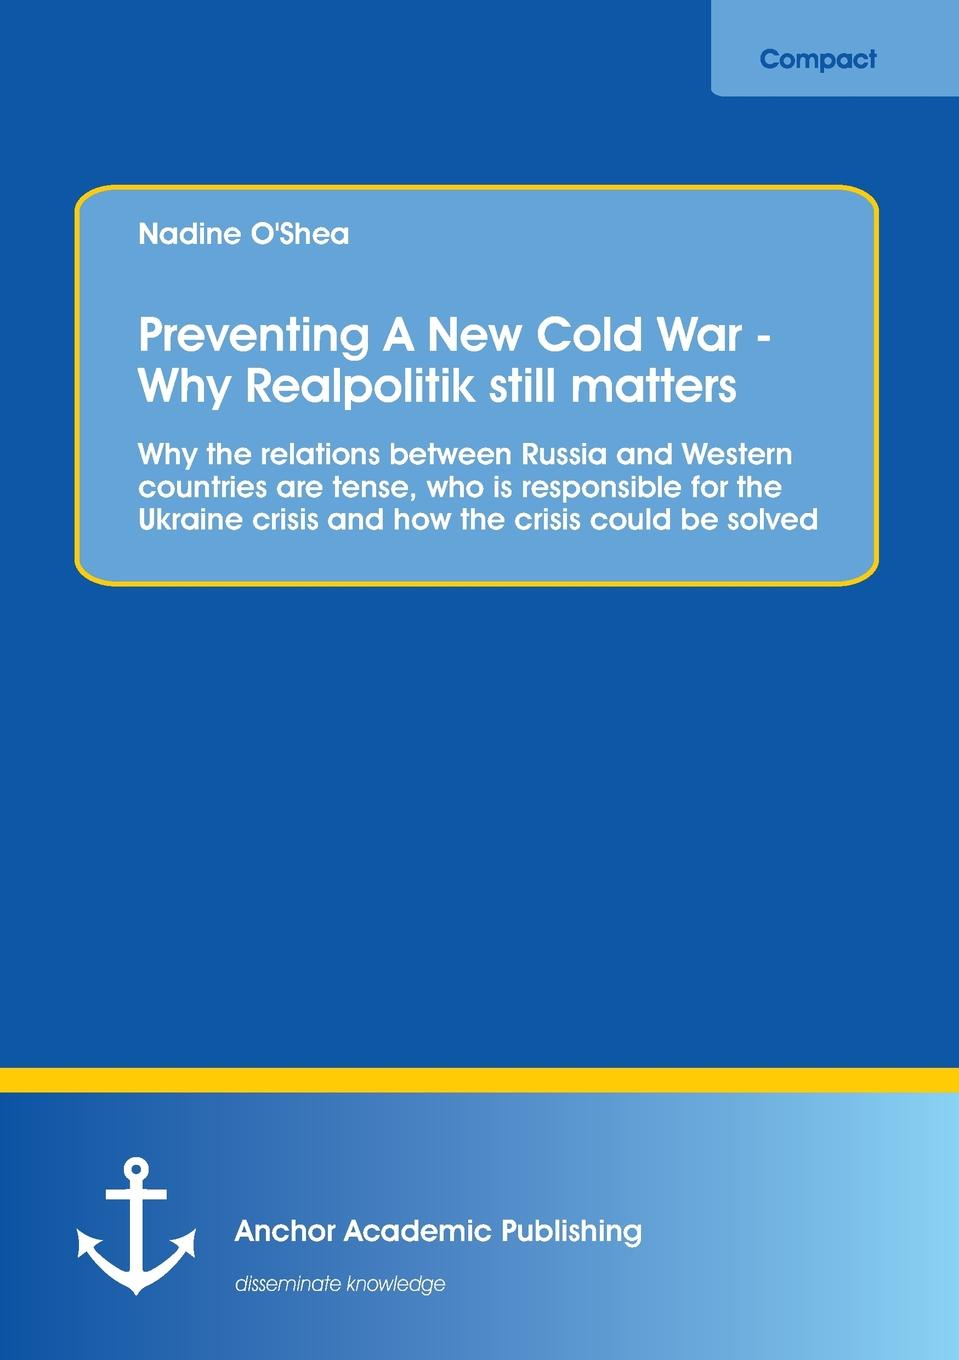 Nadine O'Shea Preventing A New Cold War - Why Realpolitik still matters the crisis of religious toleration in imperial russia